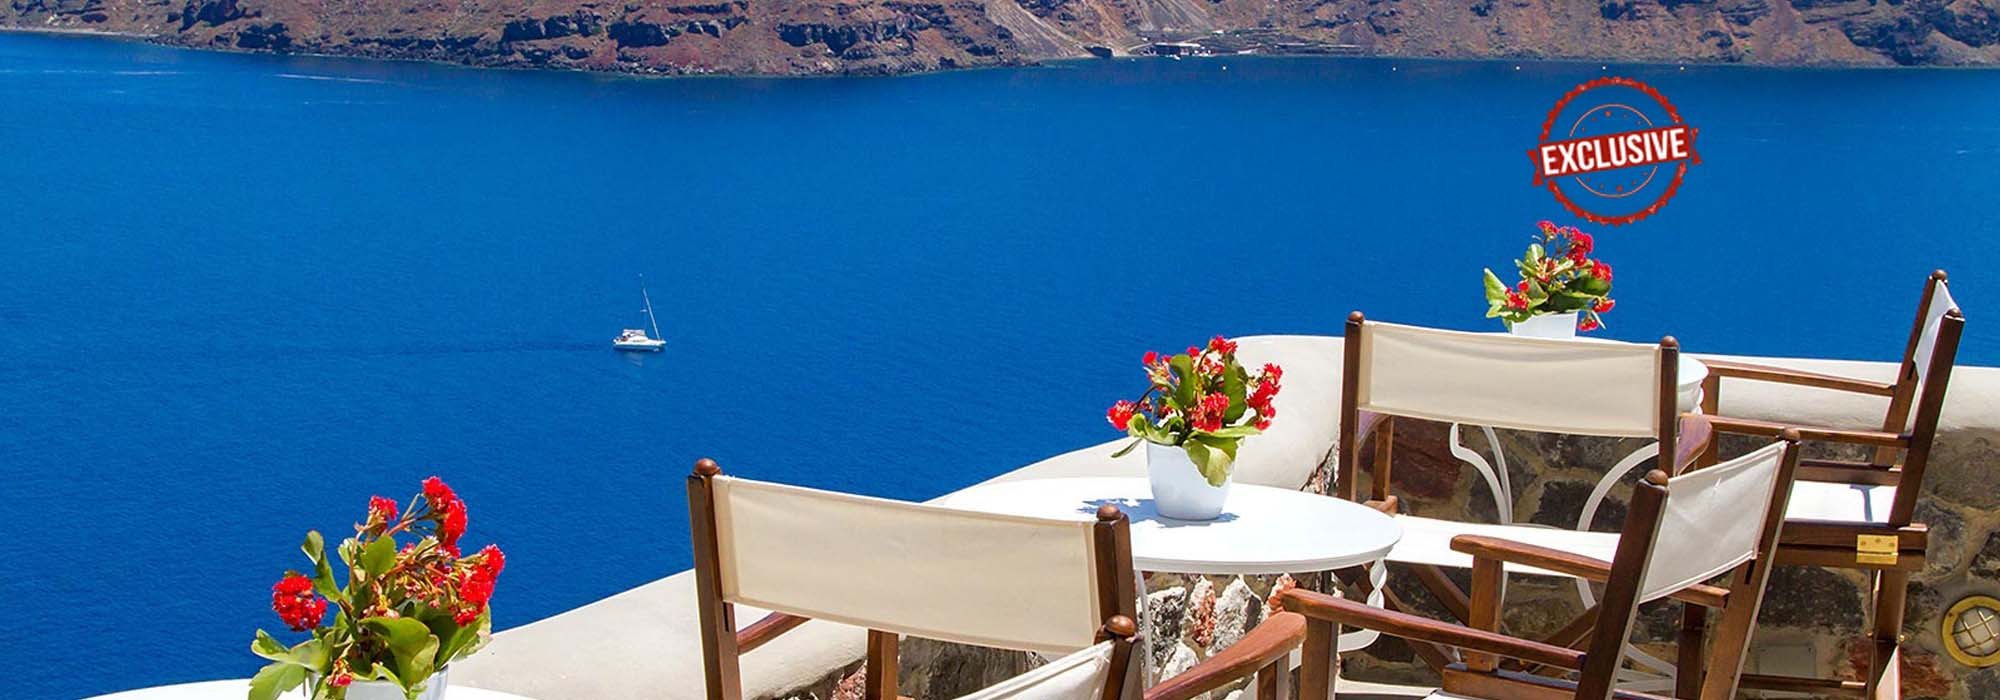 16 Luxury Suites Hotel in Oia of Santorini EXCLUSIVE